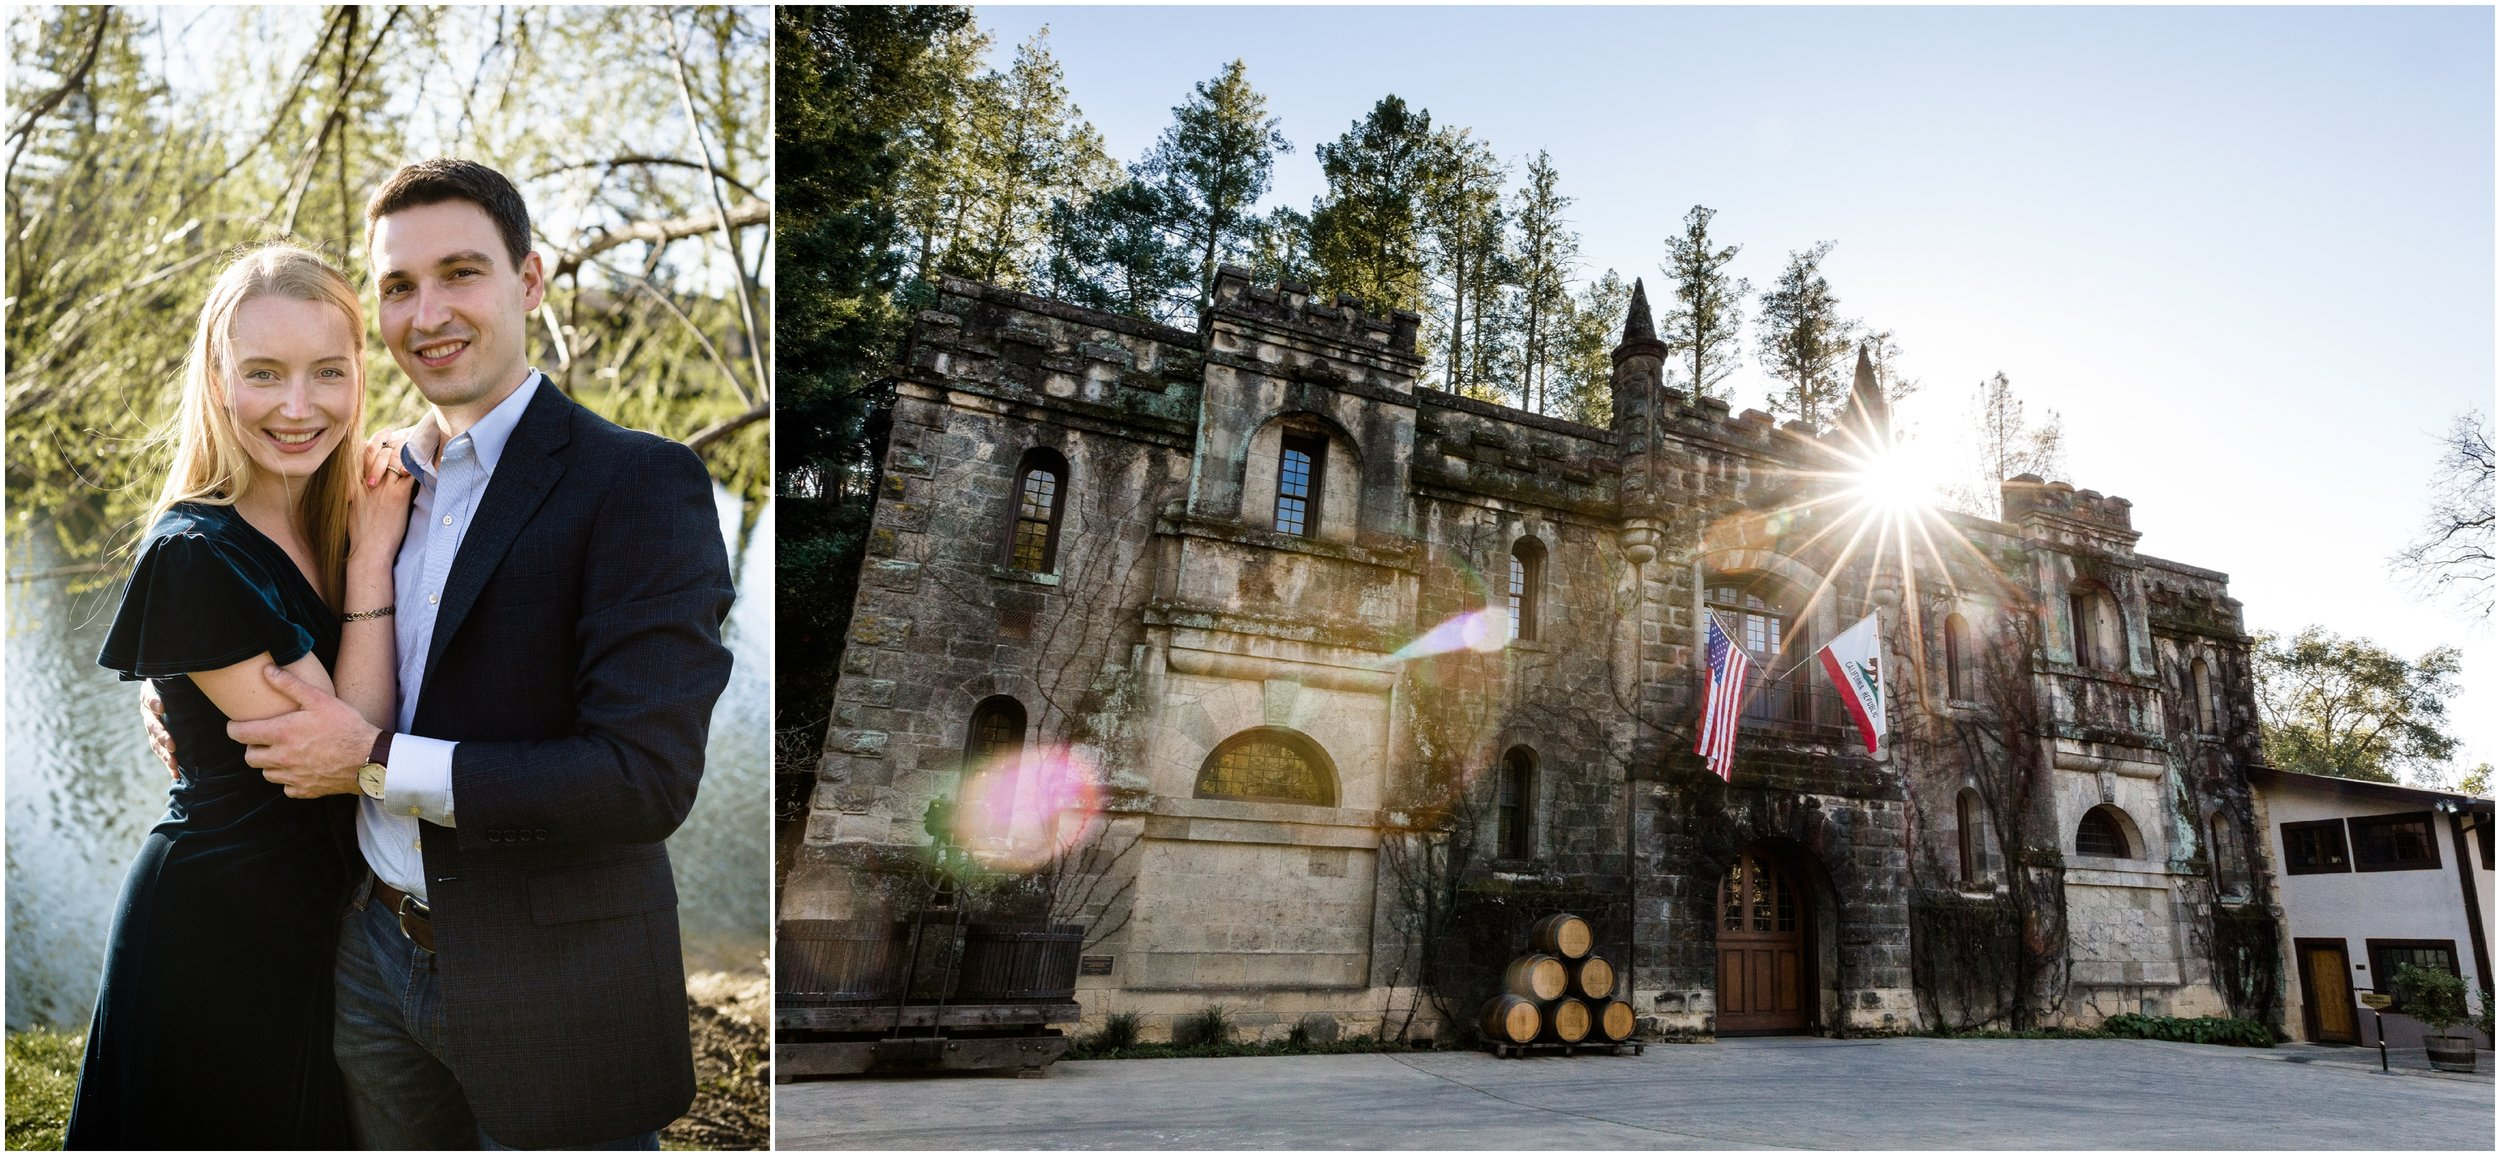 couple posing at Chateau Montelena in Napa Valley